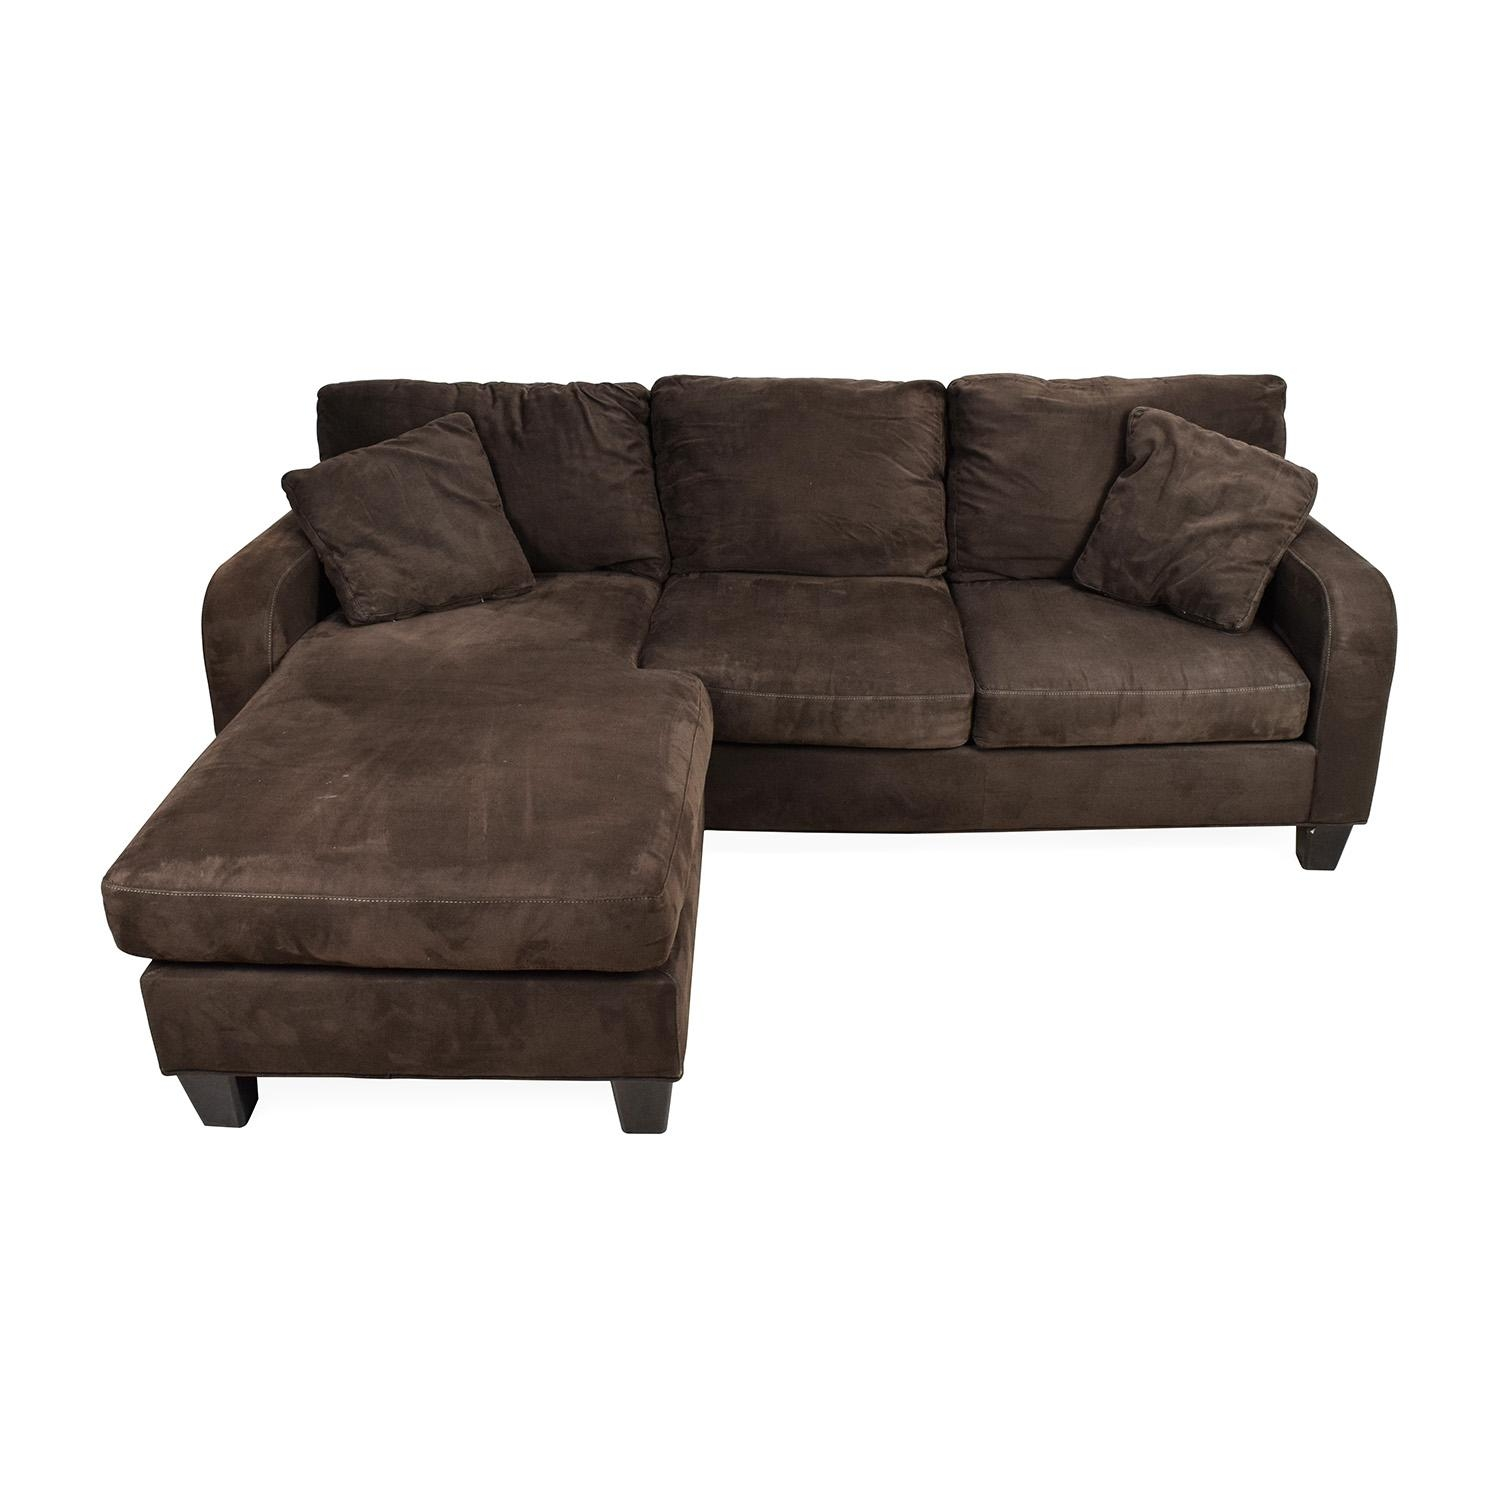 Featured Image of Cindy Crawford Microfiber Sofas